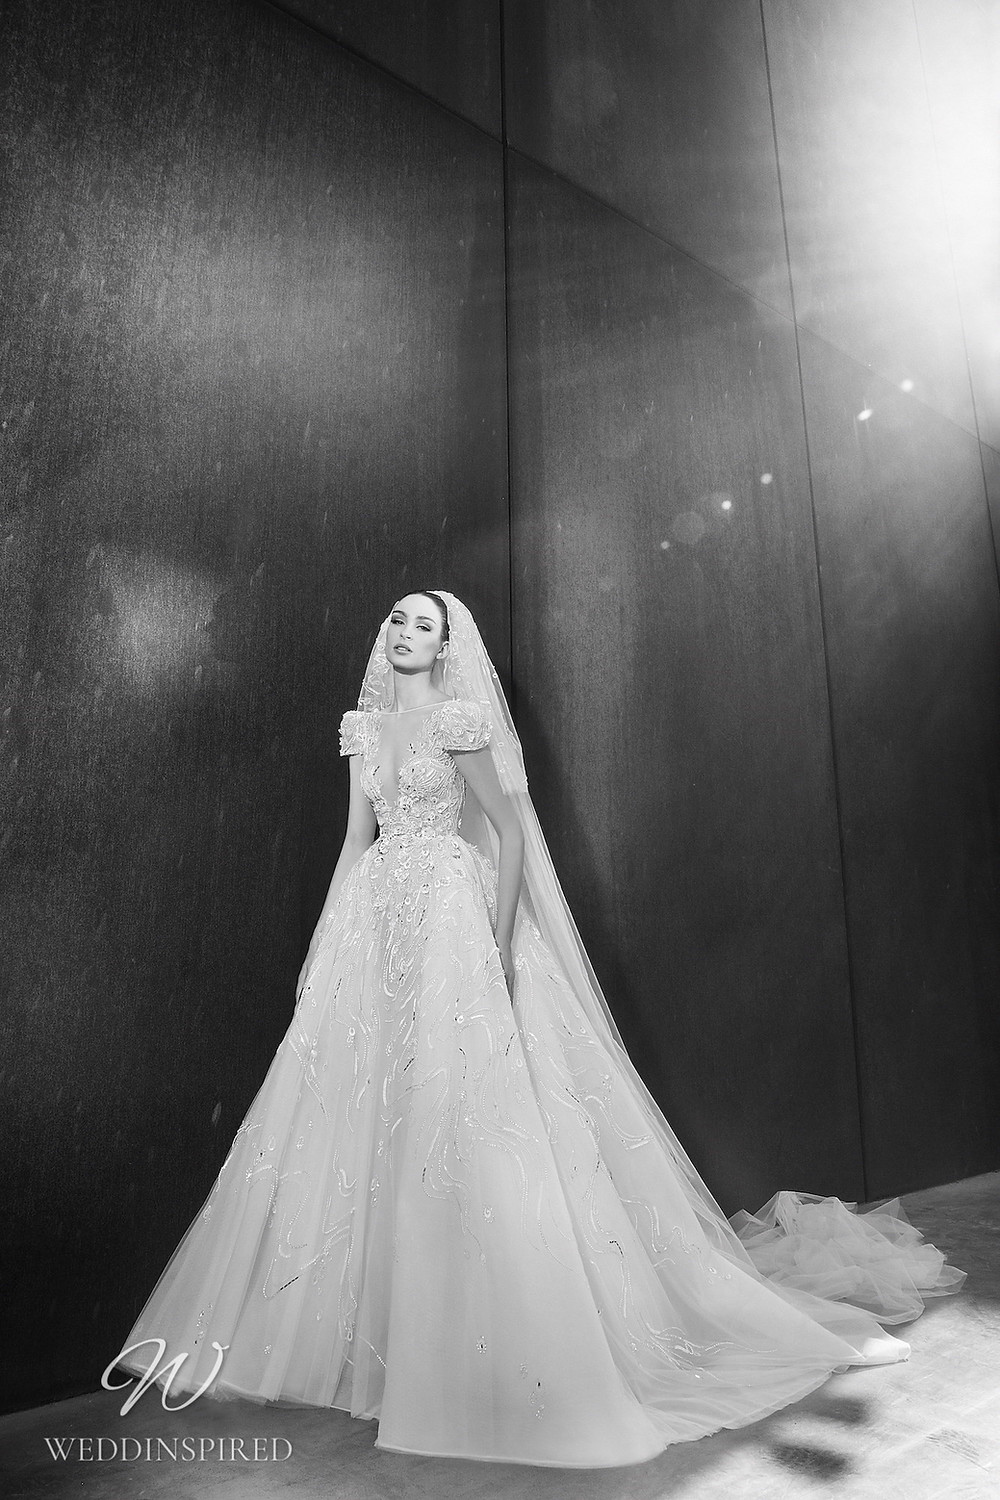 A Zuhair Murad Spring 2022 lace and tulle ball wedding dress with cap sleeves